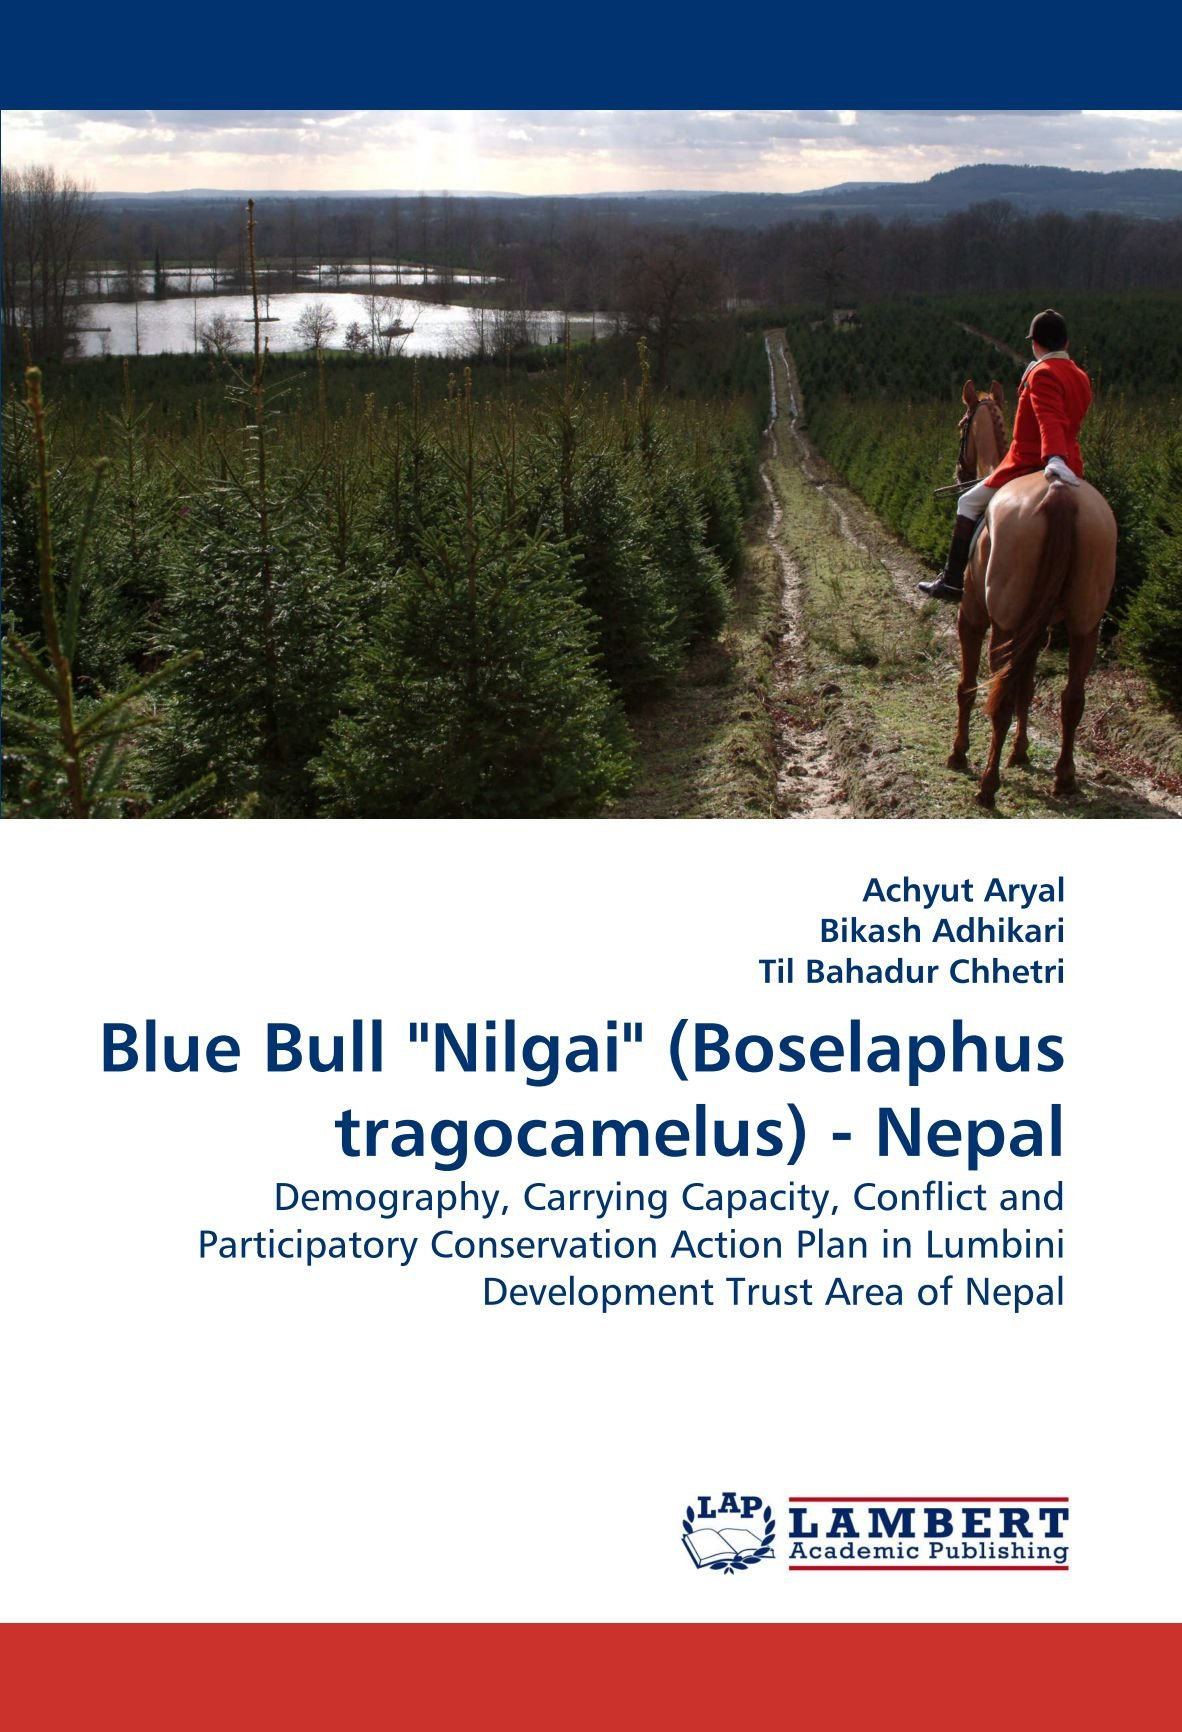 """Download Blue Bull """"Nilgai"""" (Boselaphus tragocamelus) - Nepal: Demography, Carrying Capacity, Conflict and Participatory Conservation Action Plan in Lumbini Development Trust Area of Nepal ebook"""